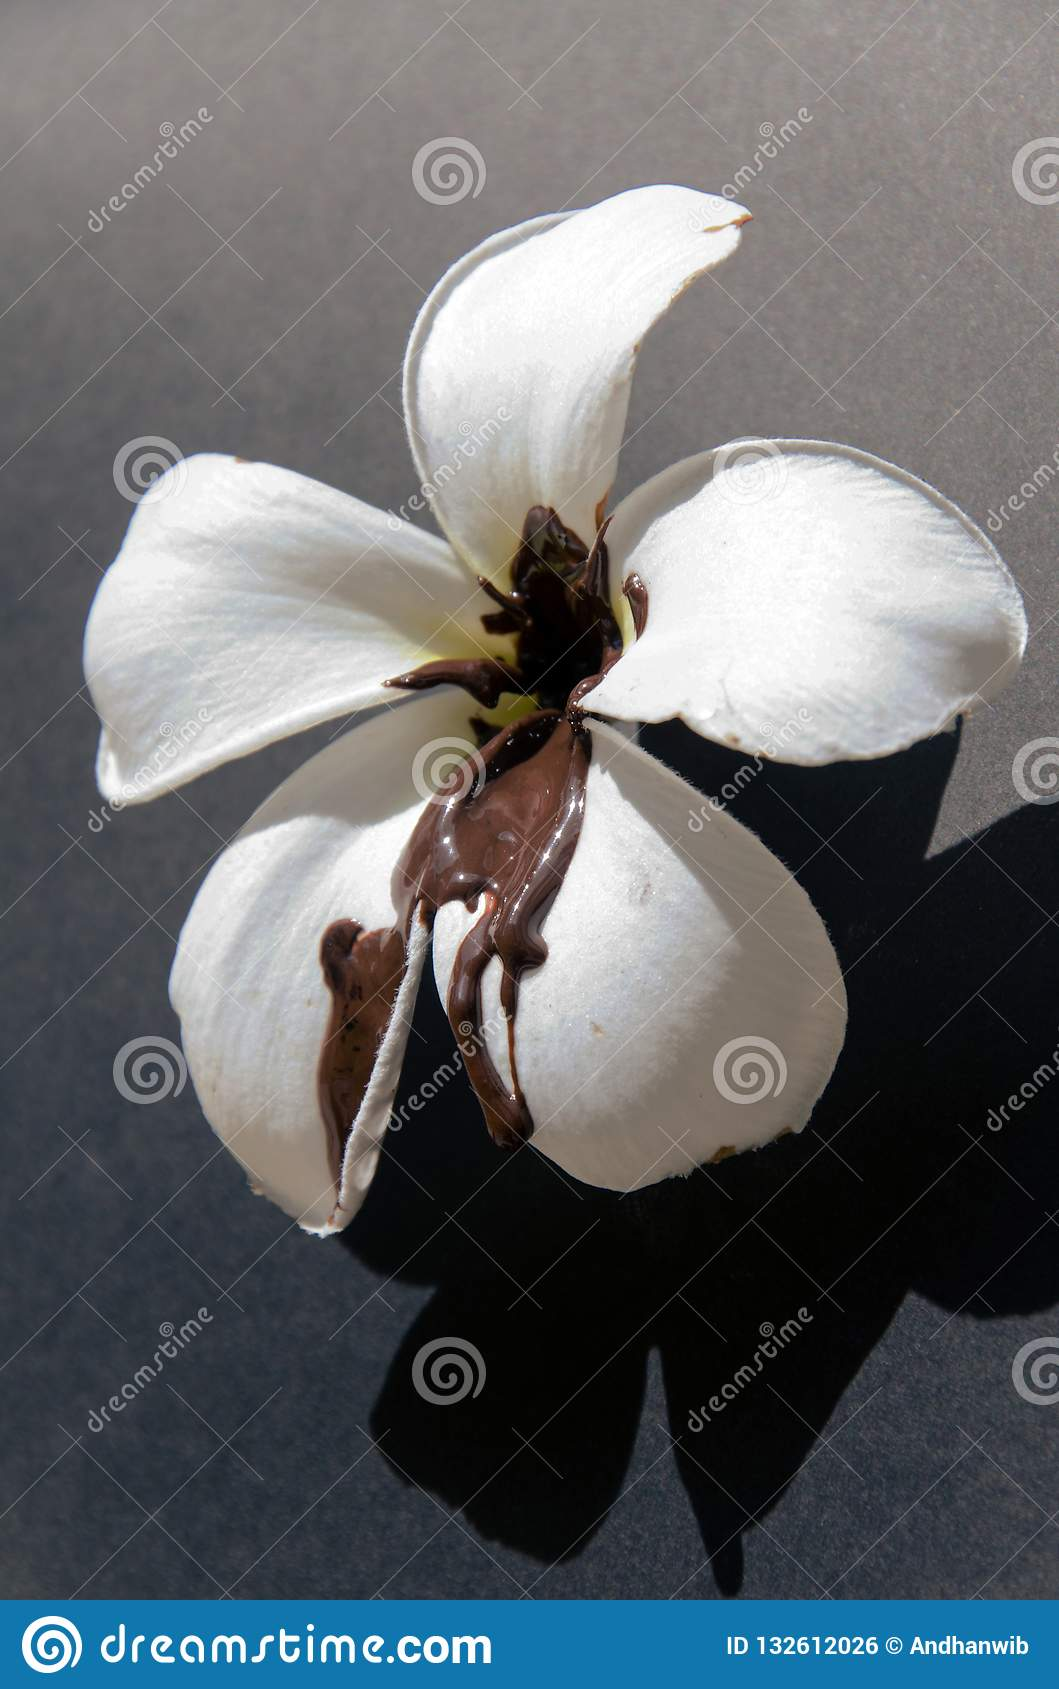 White Flower Tainted With Molten Chocolate Stock Photo Image Of